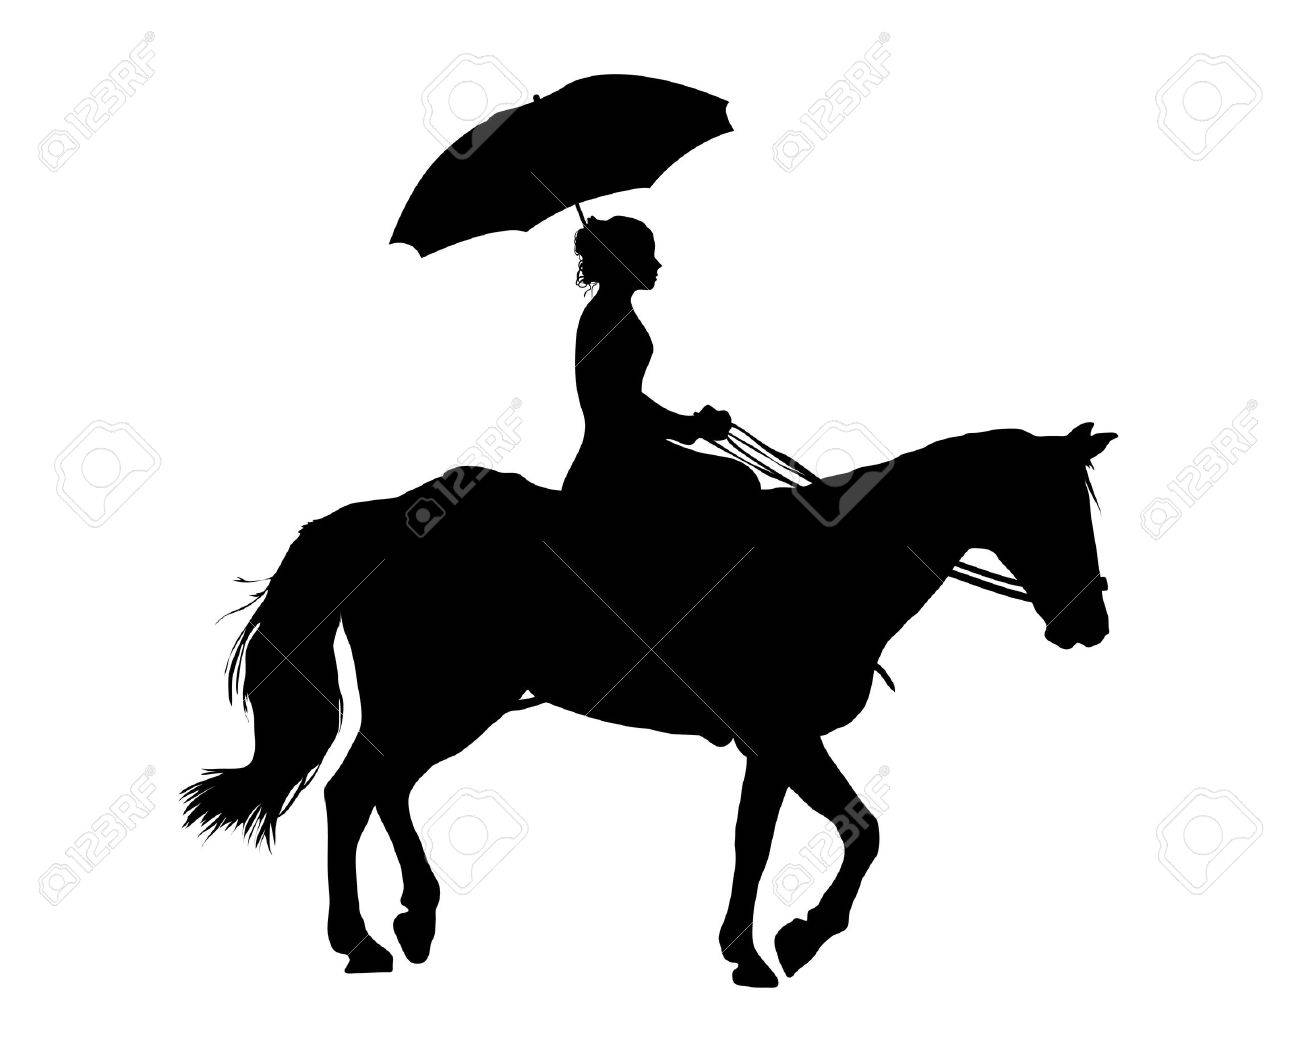 Illustration Of Woman Riding Horse On White Background Stock Photo Picture And Royalty Free Image Image 3091682